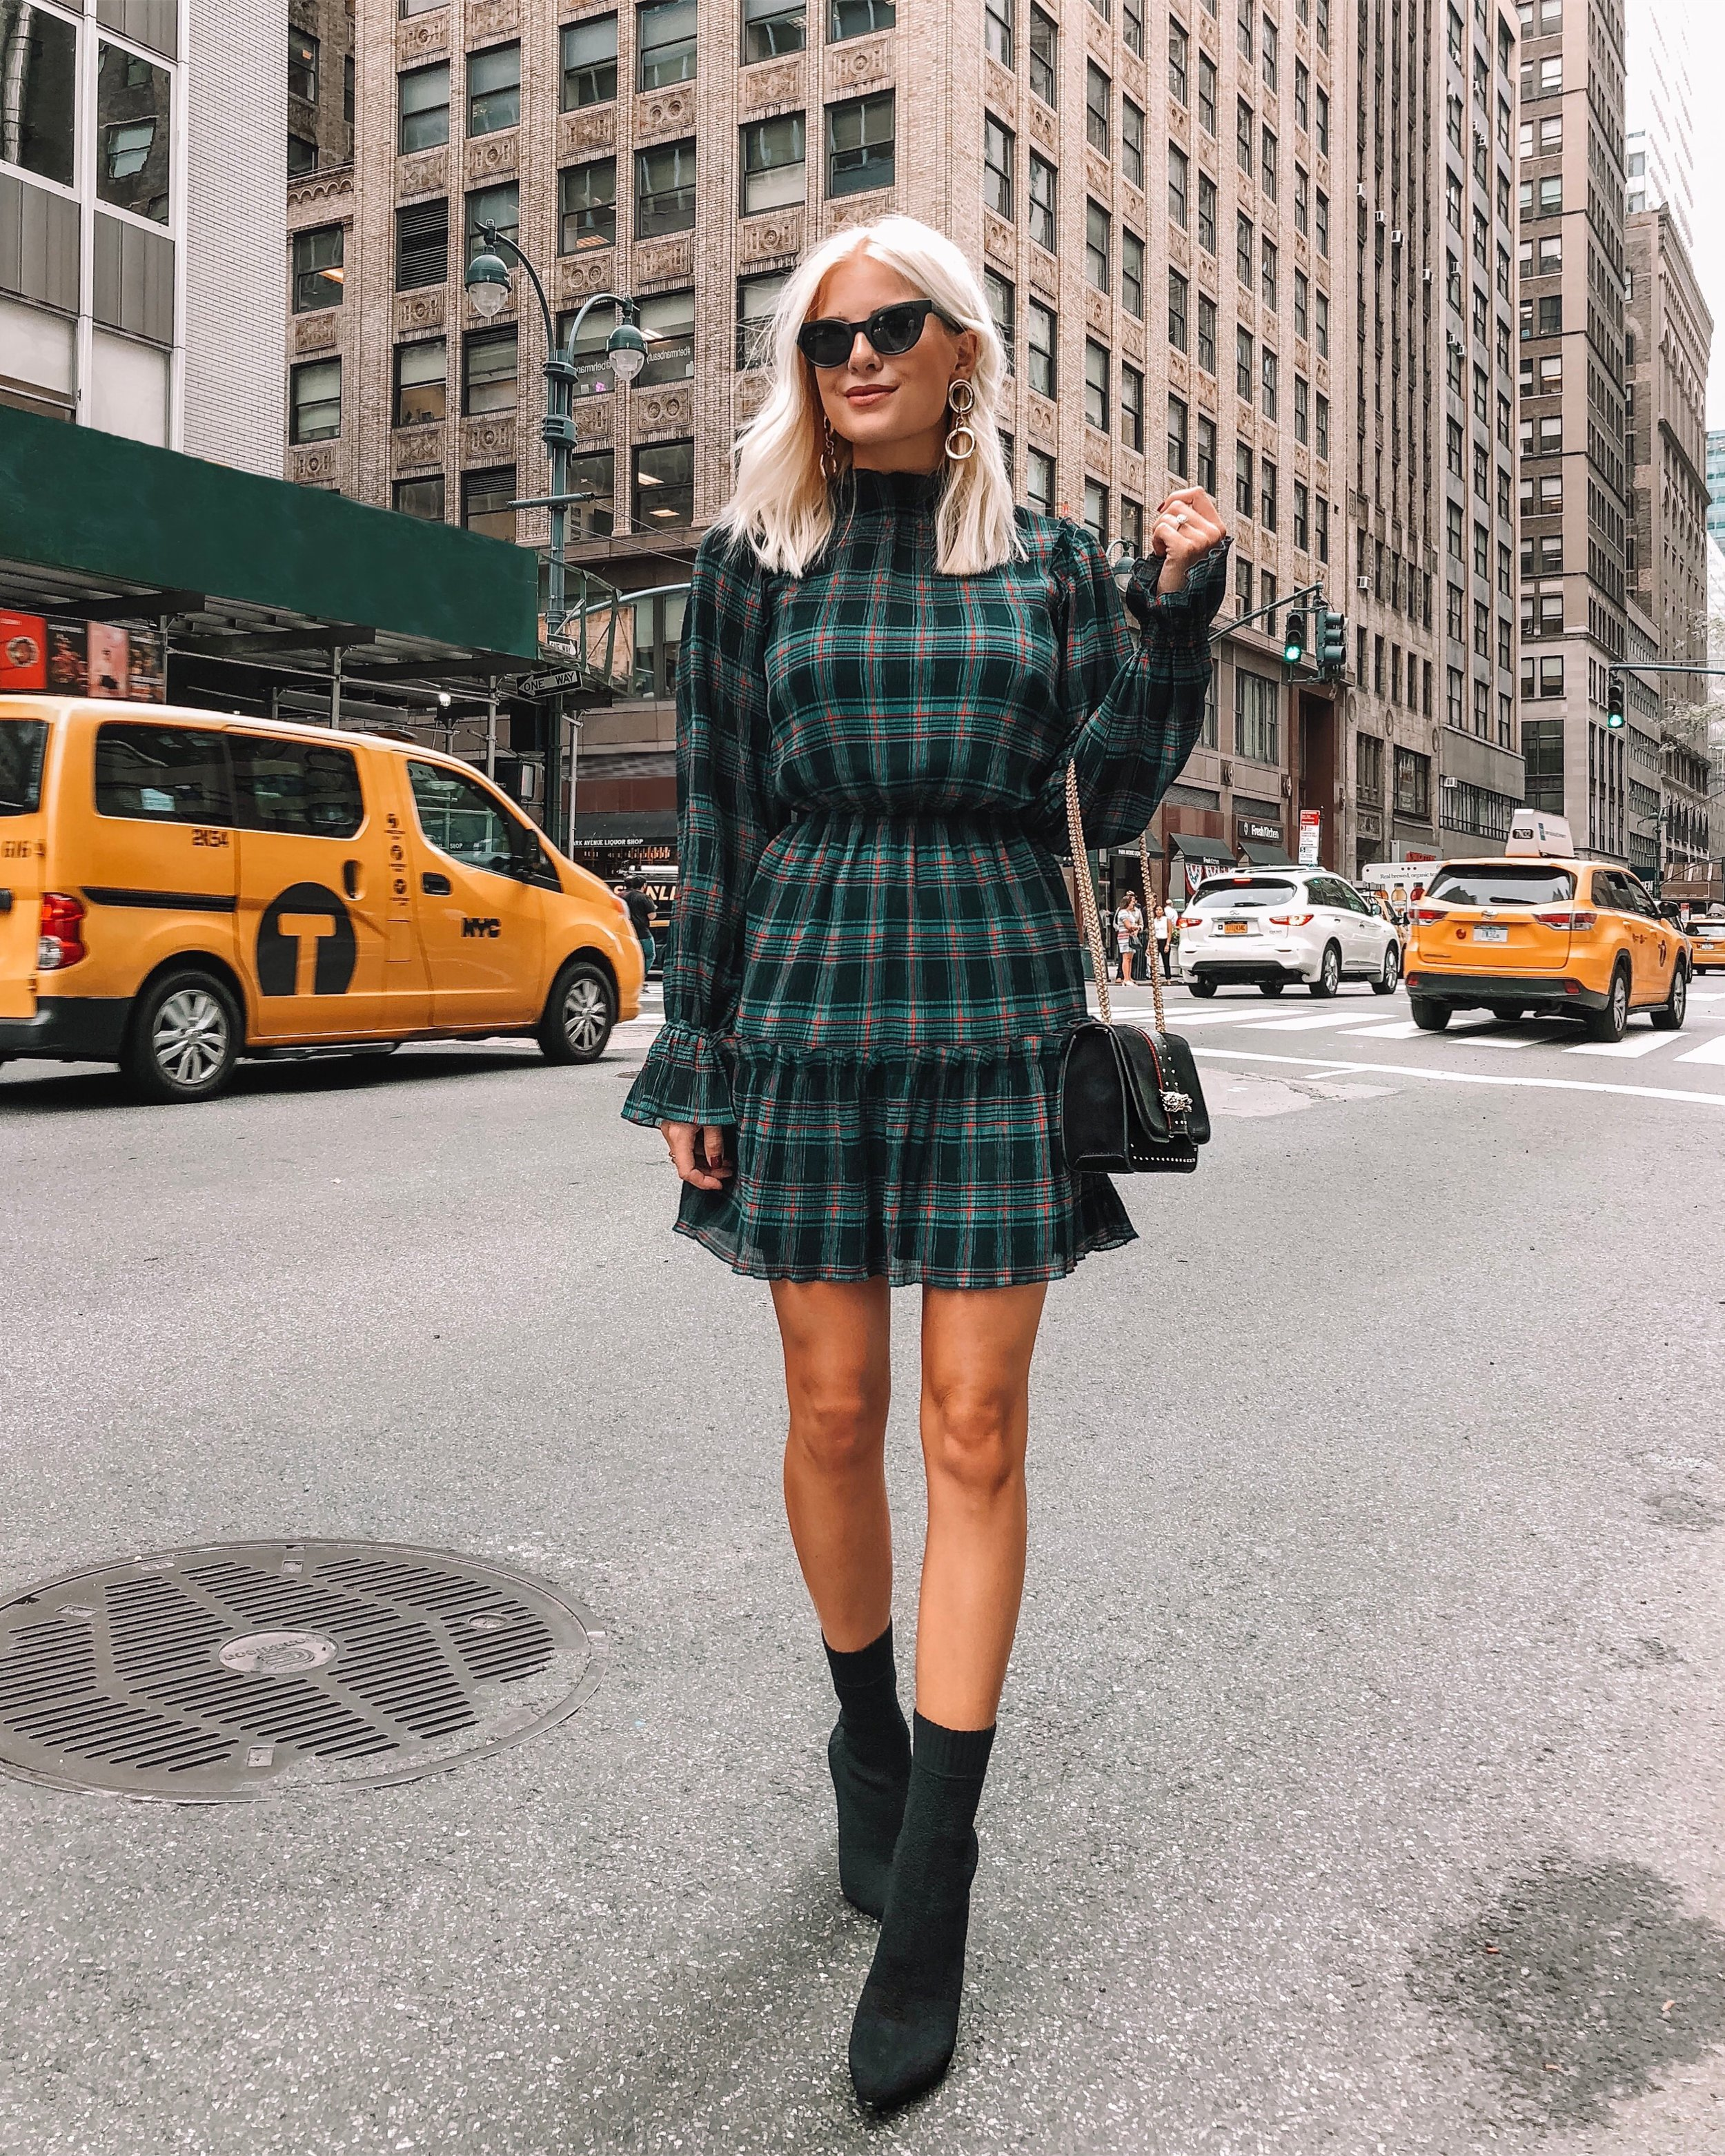 Rad in Plaid - This dress was a huge crowd fav for y'all. It's from Lesley Jane Boutique. I'm wearing a size small. True to size. Also, LOVING the sock bootie trend!